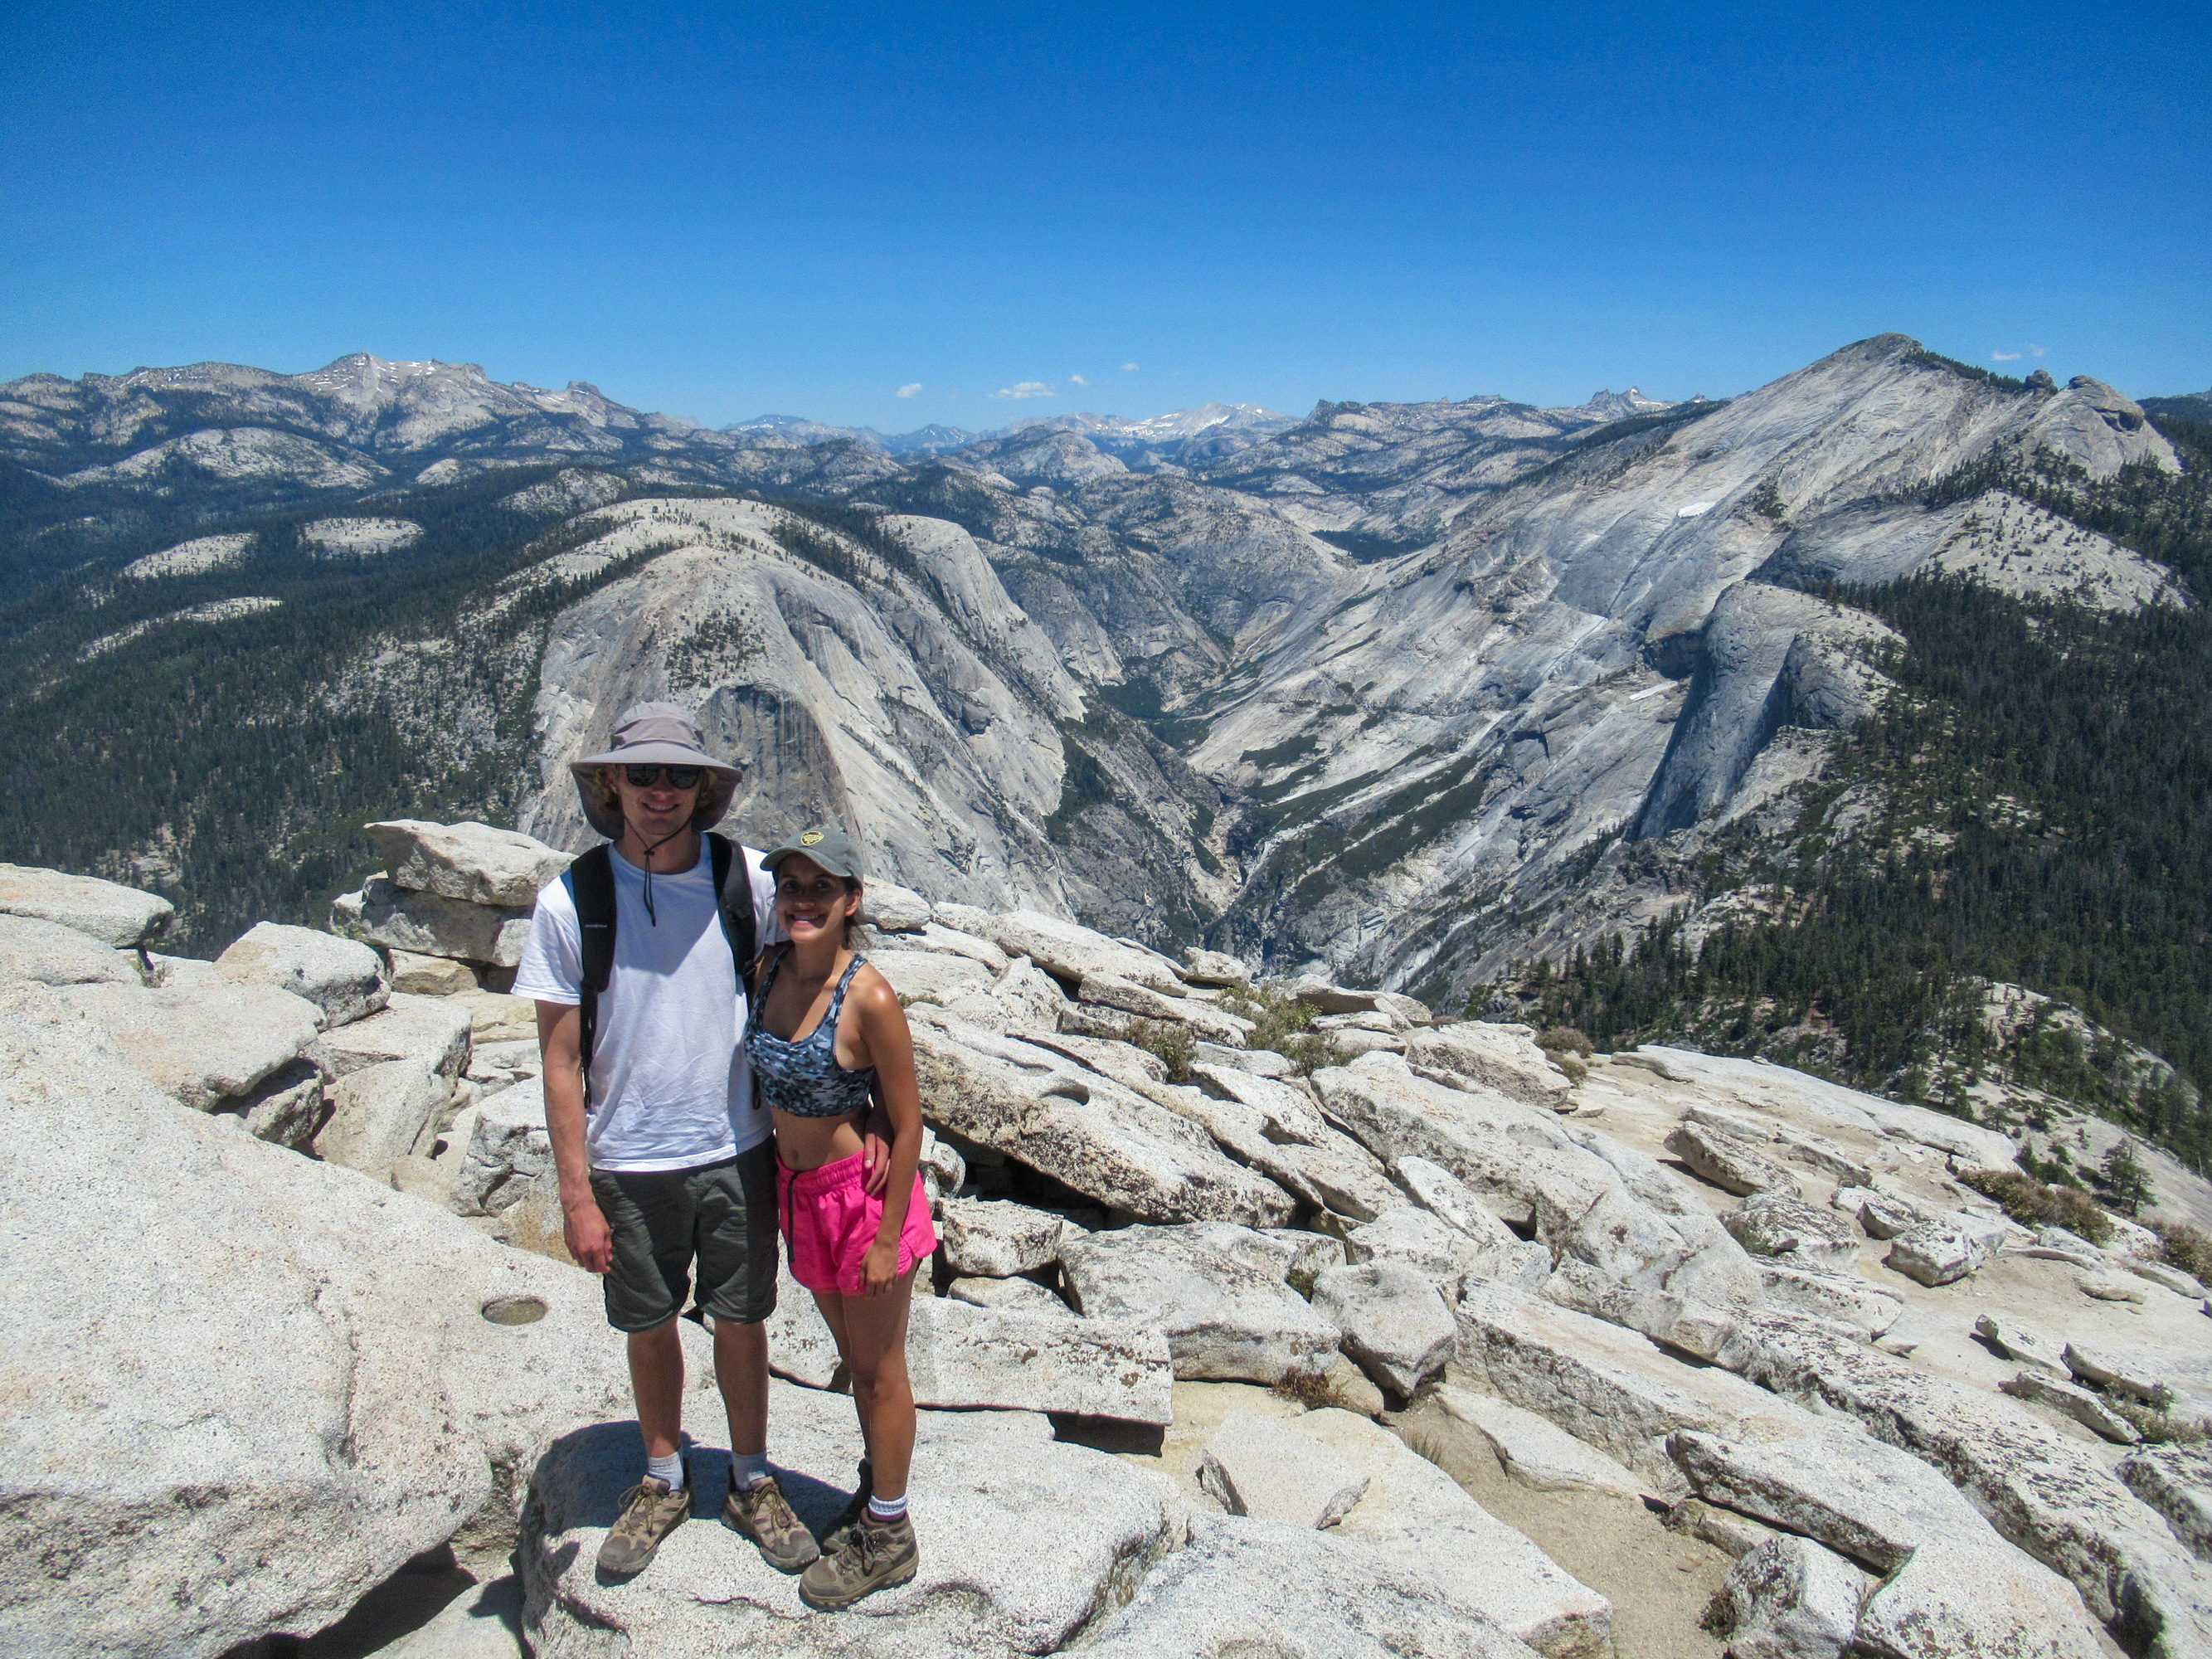 Evan Quarnstrom and Madison Snively take in the views atop Half Dome.